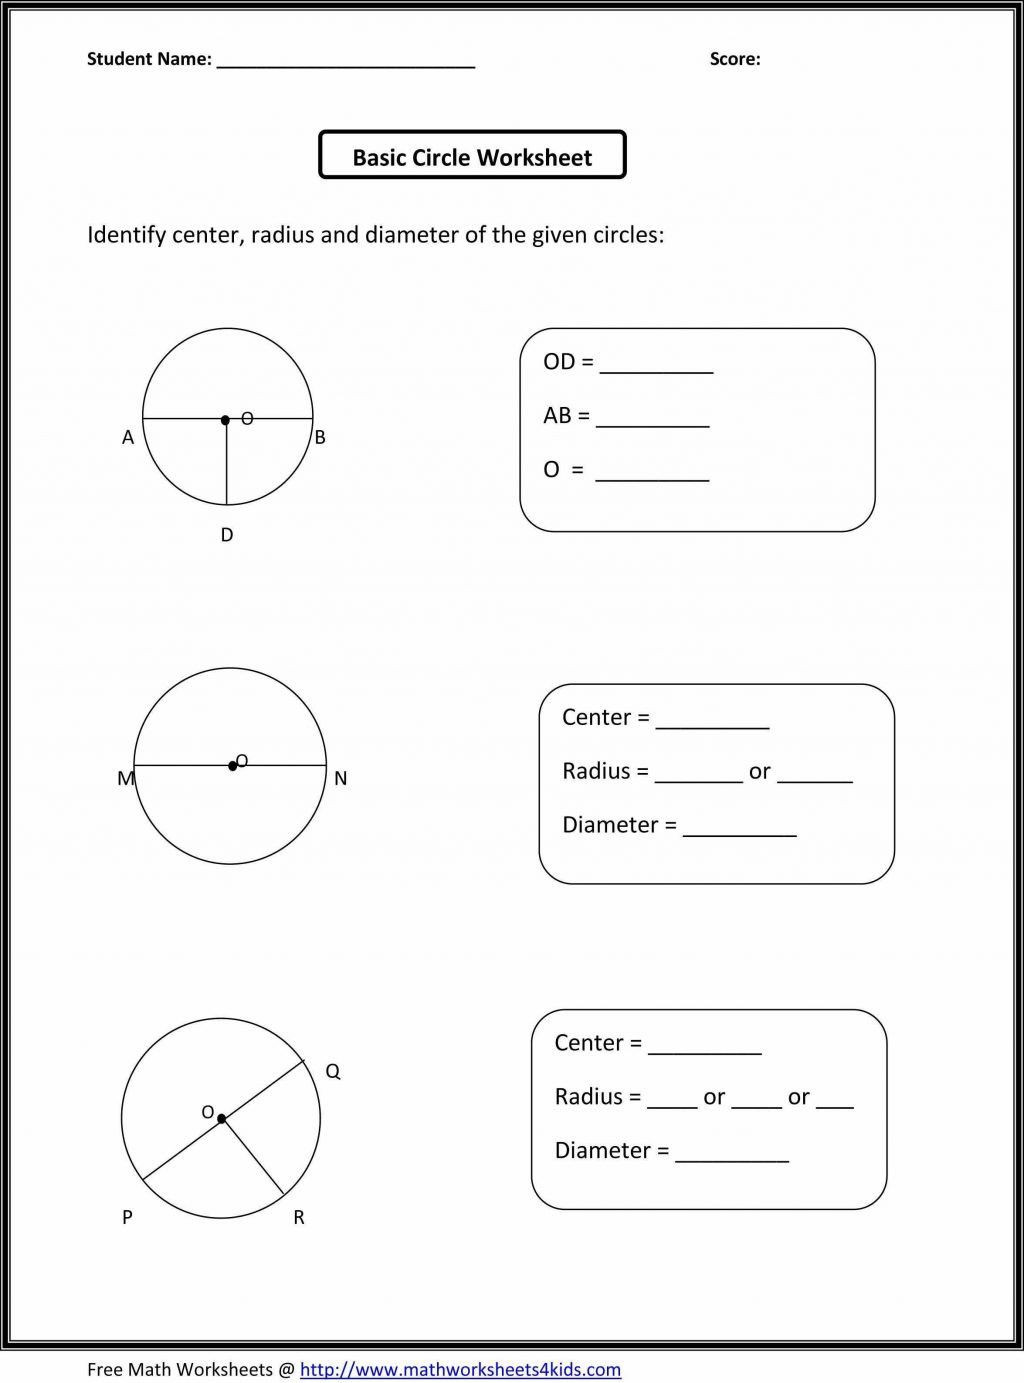 Systems Of Equations Worksheet Pdf 4 Writing Equations From Word Problems Worksheet Pdf In 2020